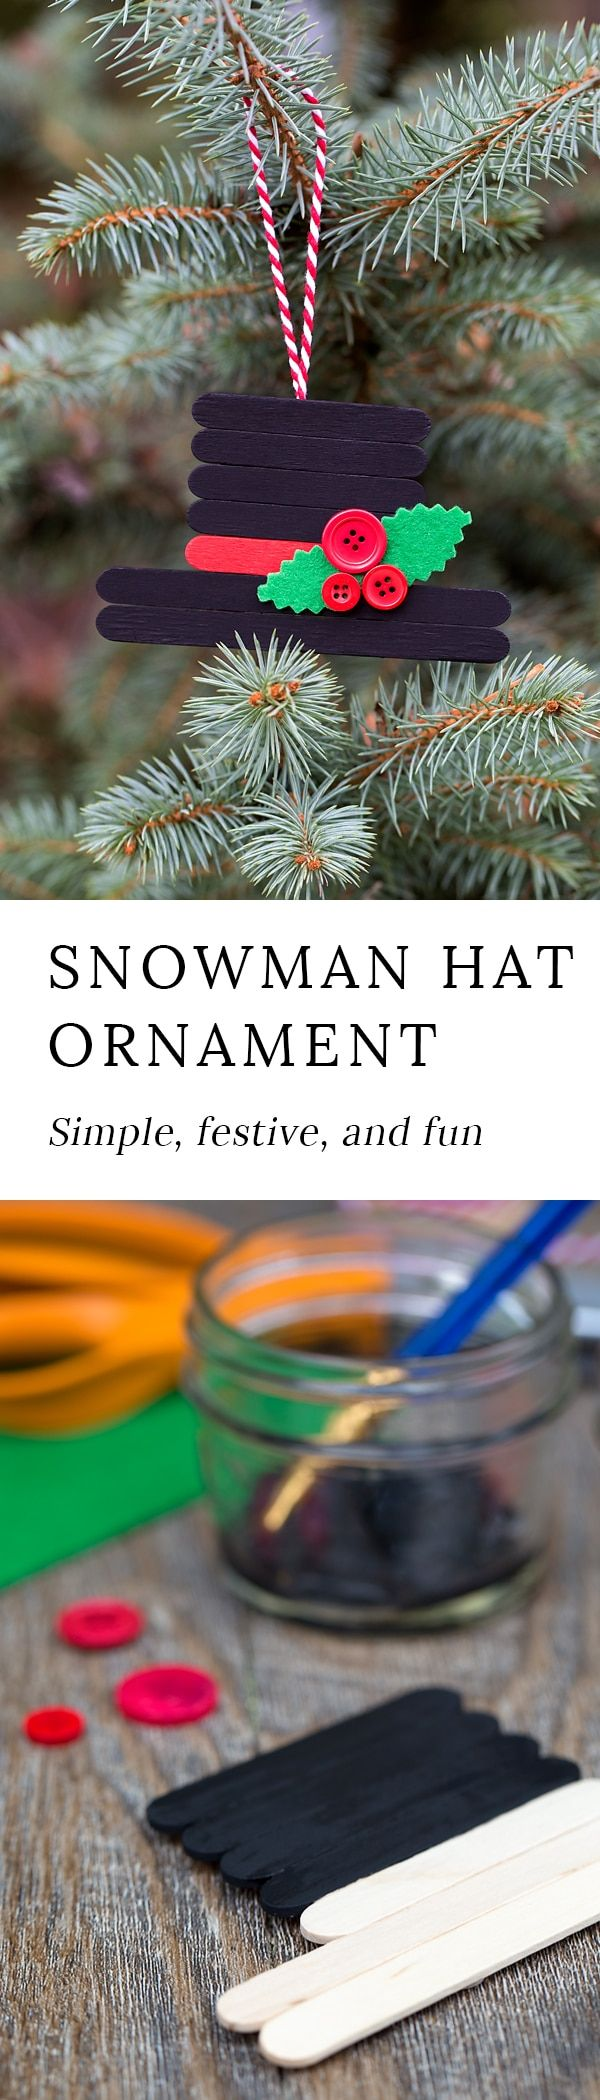 'Tis the season for fun, festive Christmas ornaments! This creative Snowman Hat Ornament is a cute Christmas craft for crafters of all ages. via @https://www.pinterest.com/fireflymudpie/